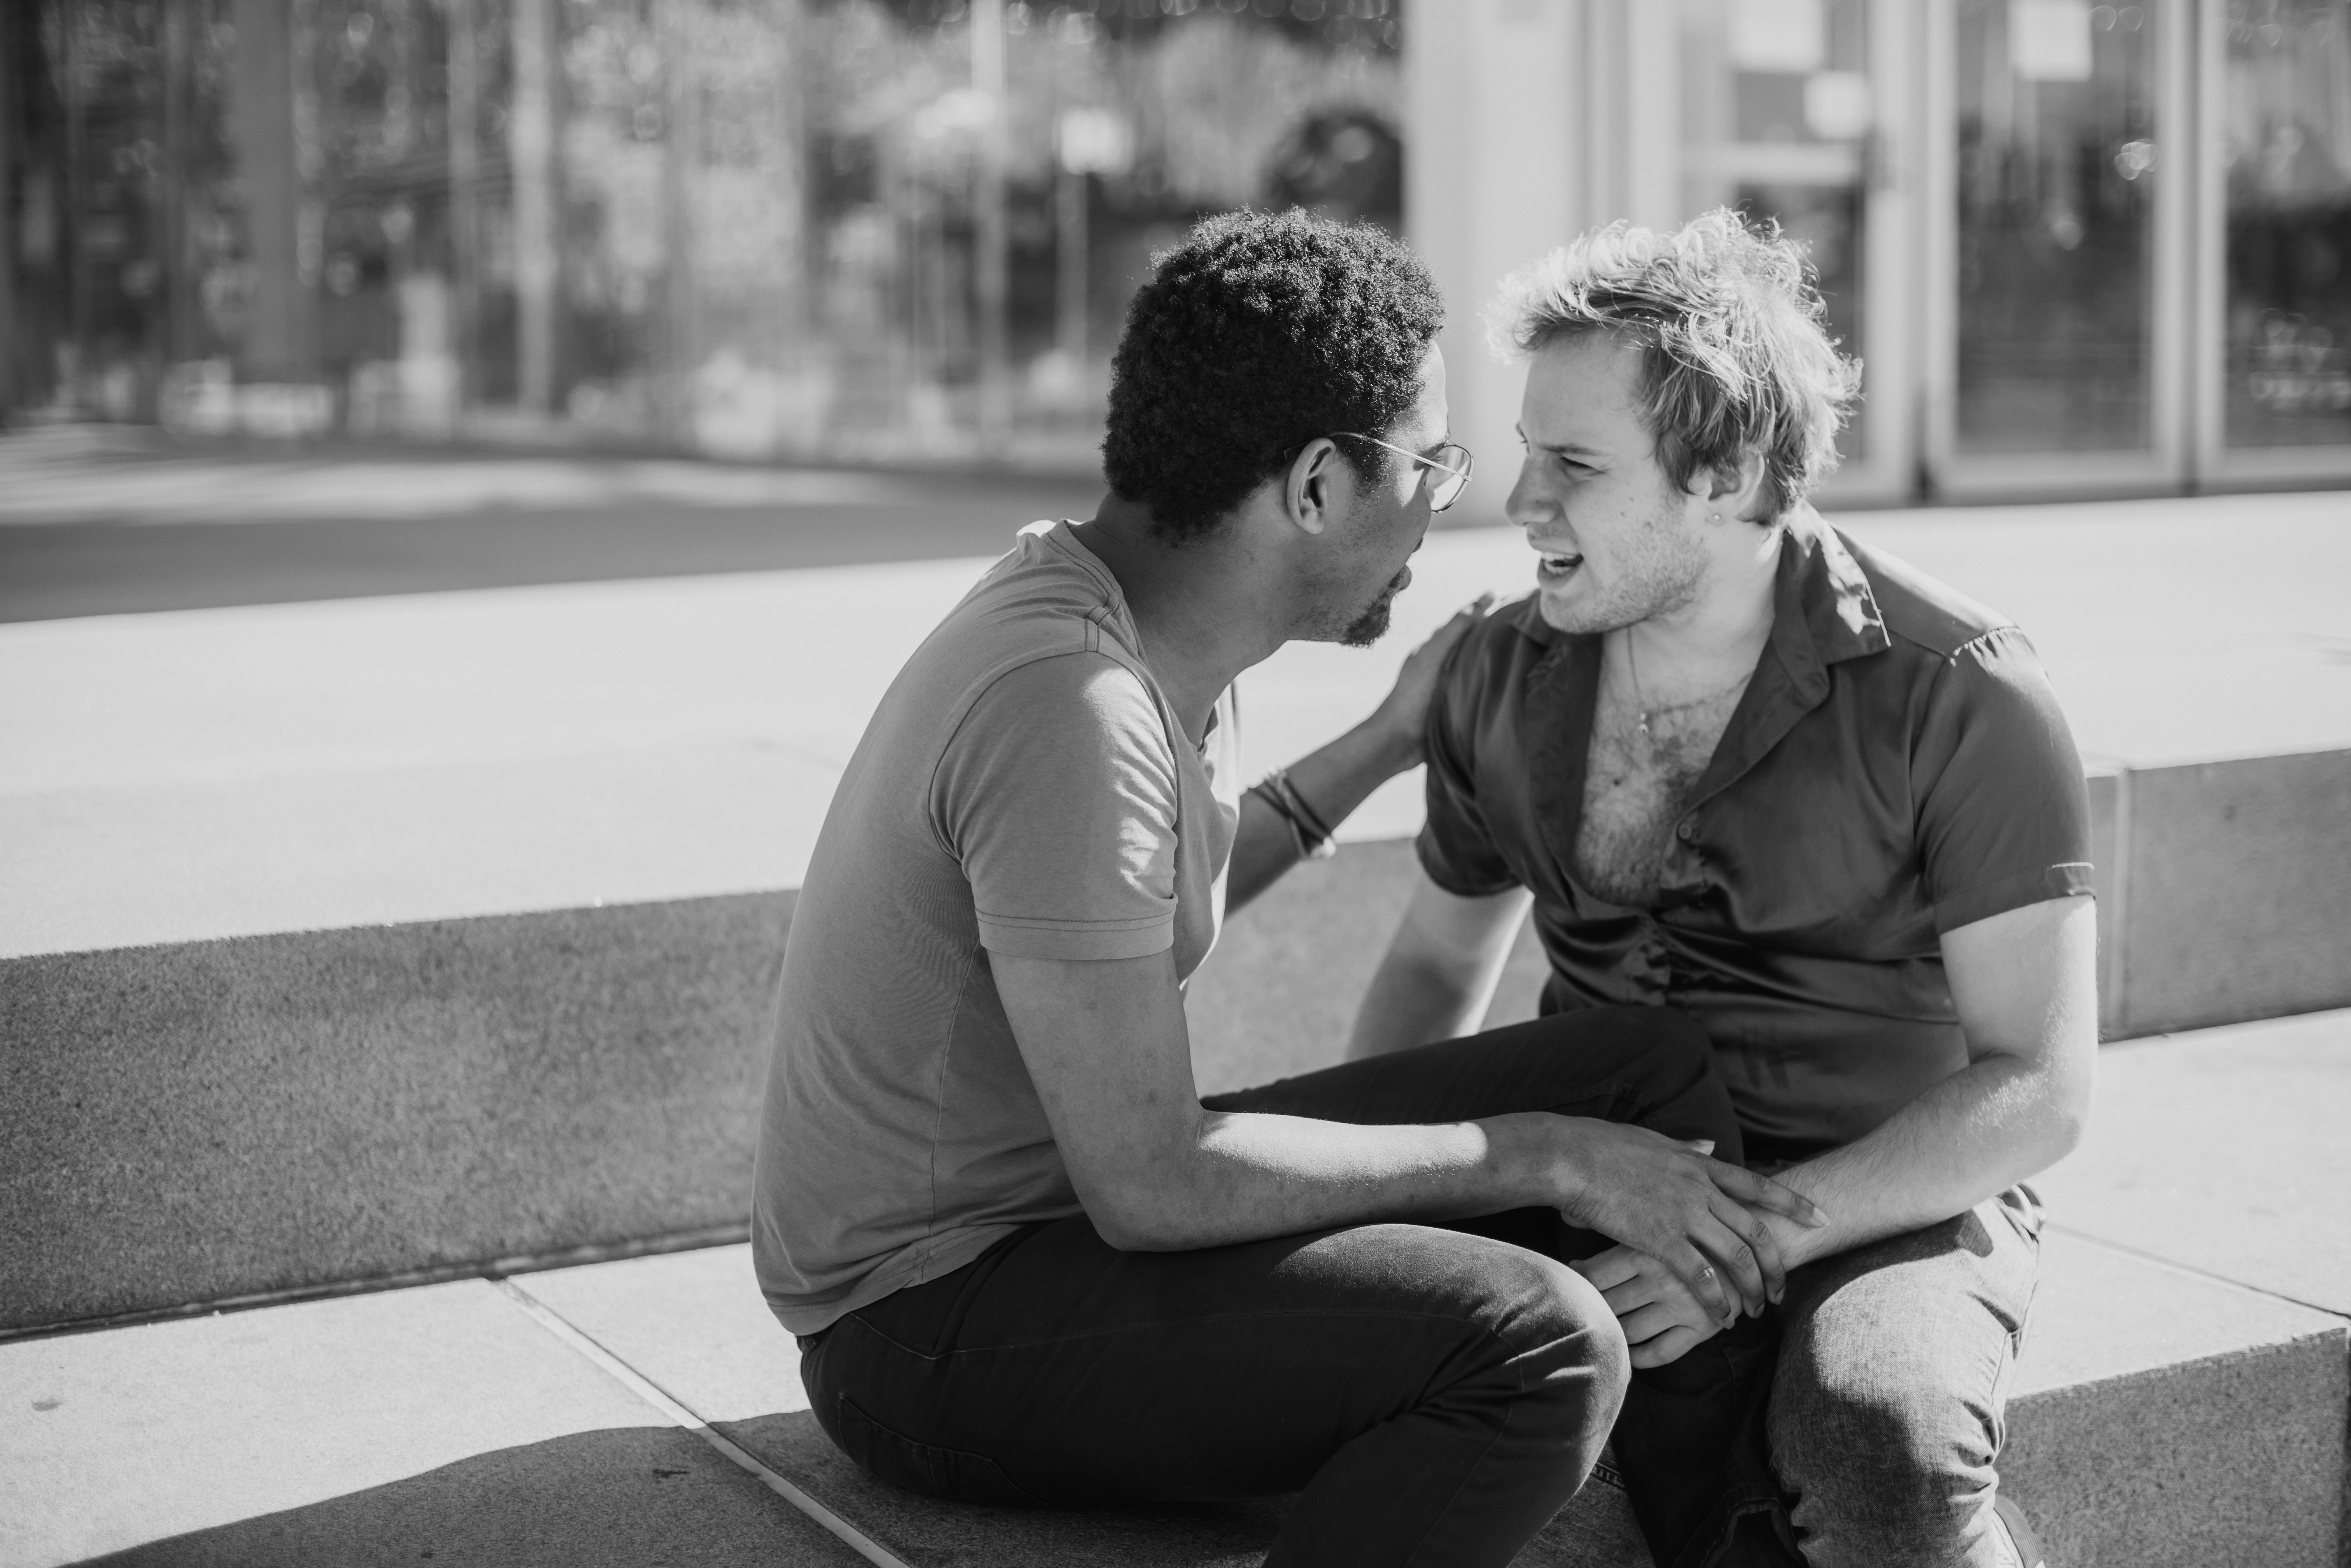 grayscale-photo-of-two-men-talking-4657904